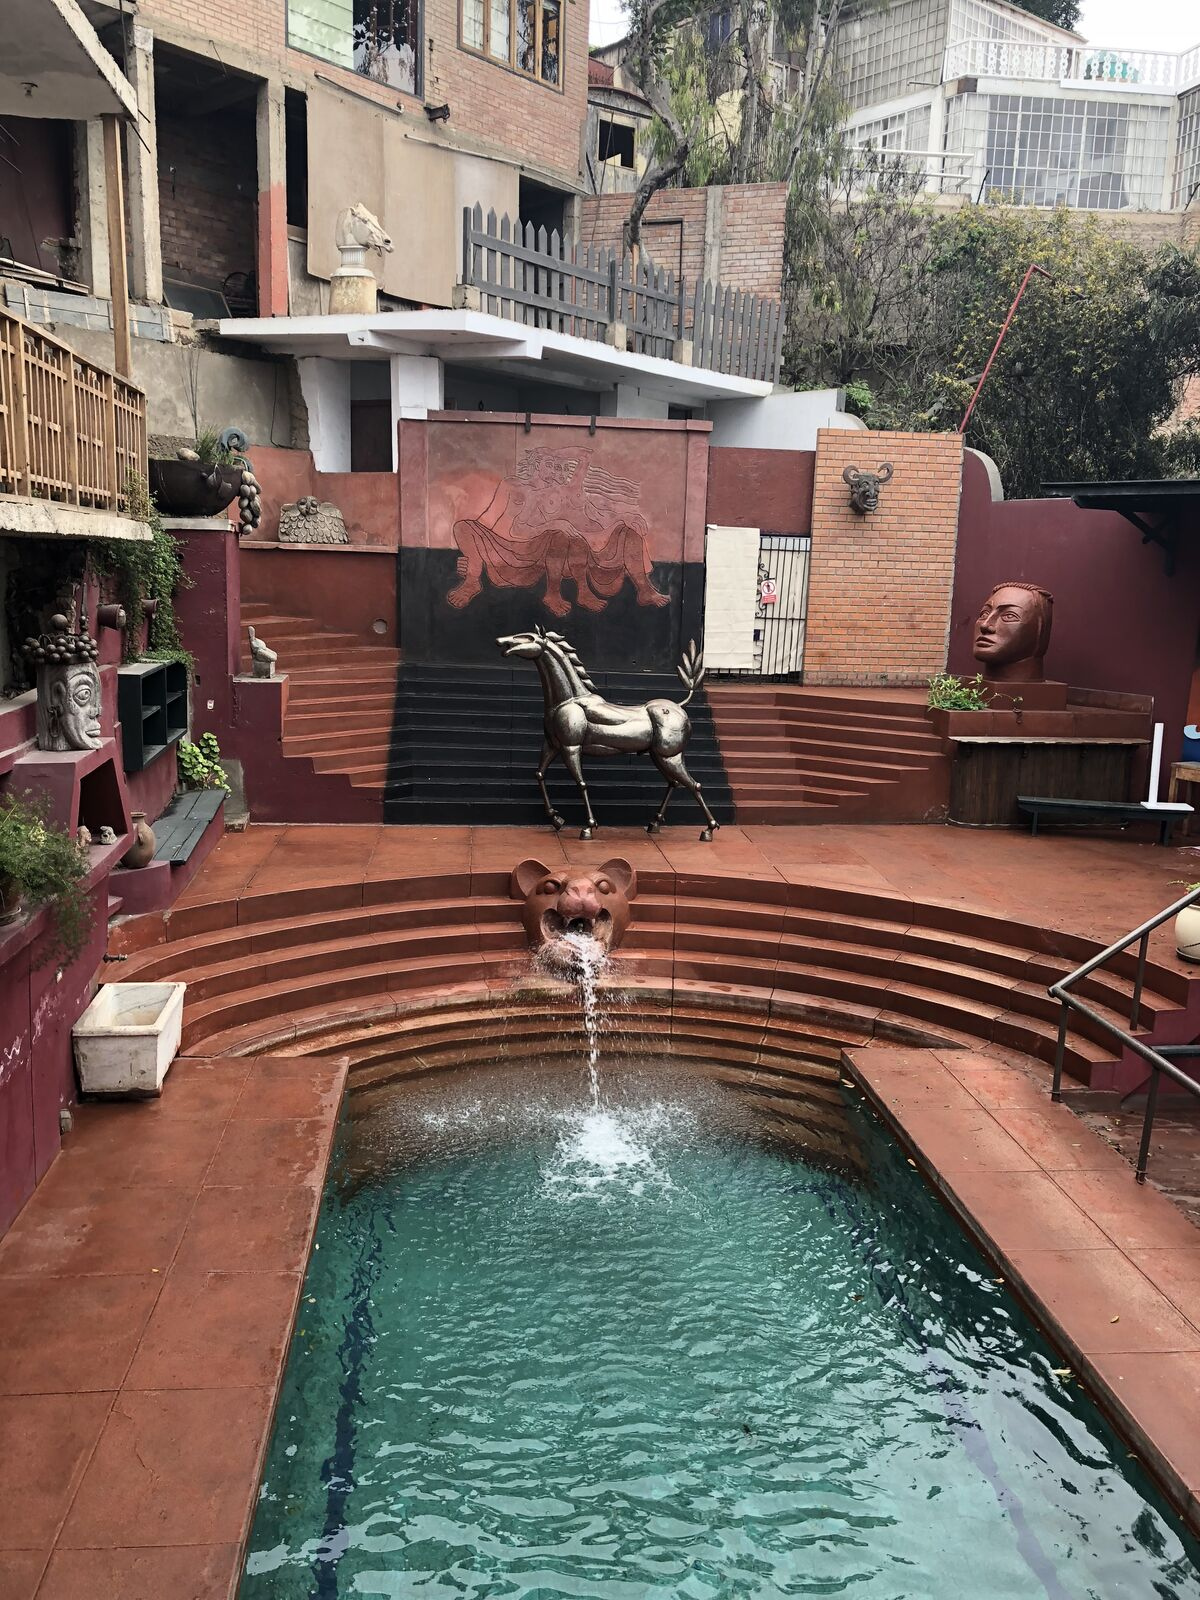 View of the swimming pool at Second Home Peru. Photo by Emily Ludolph. Courtesy of Emily Ludolph.